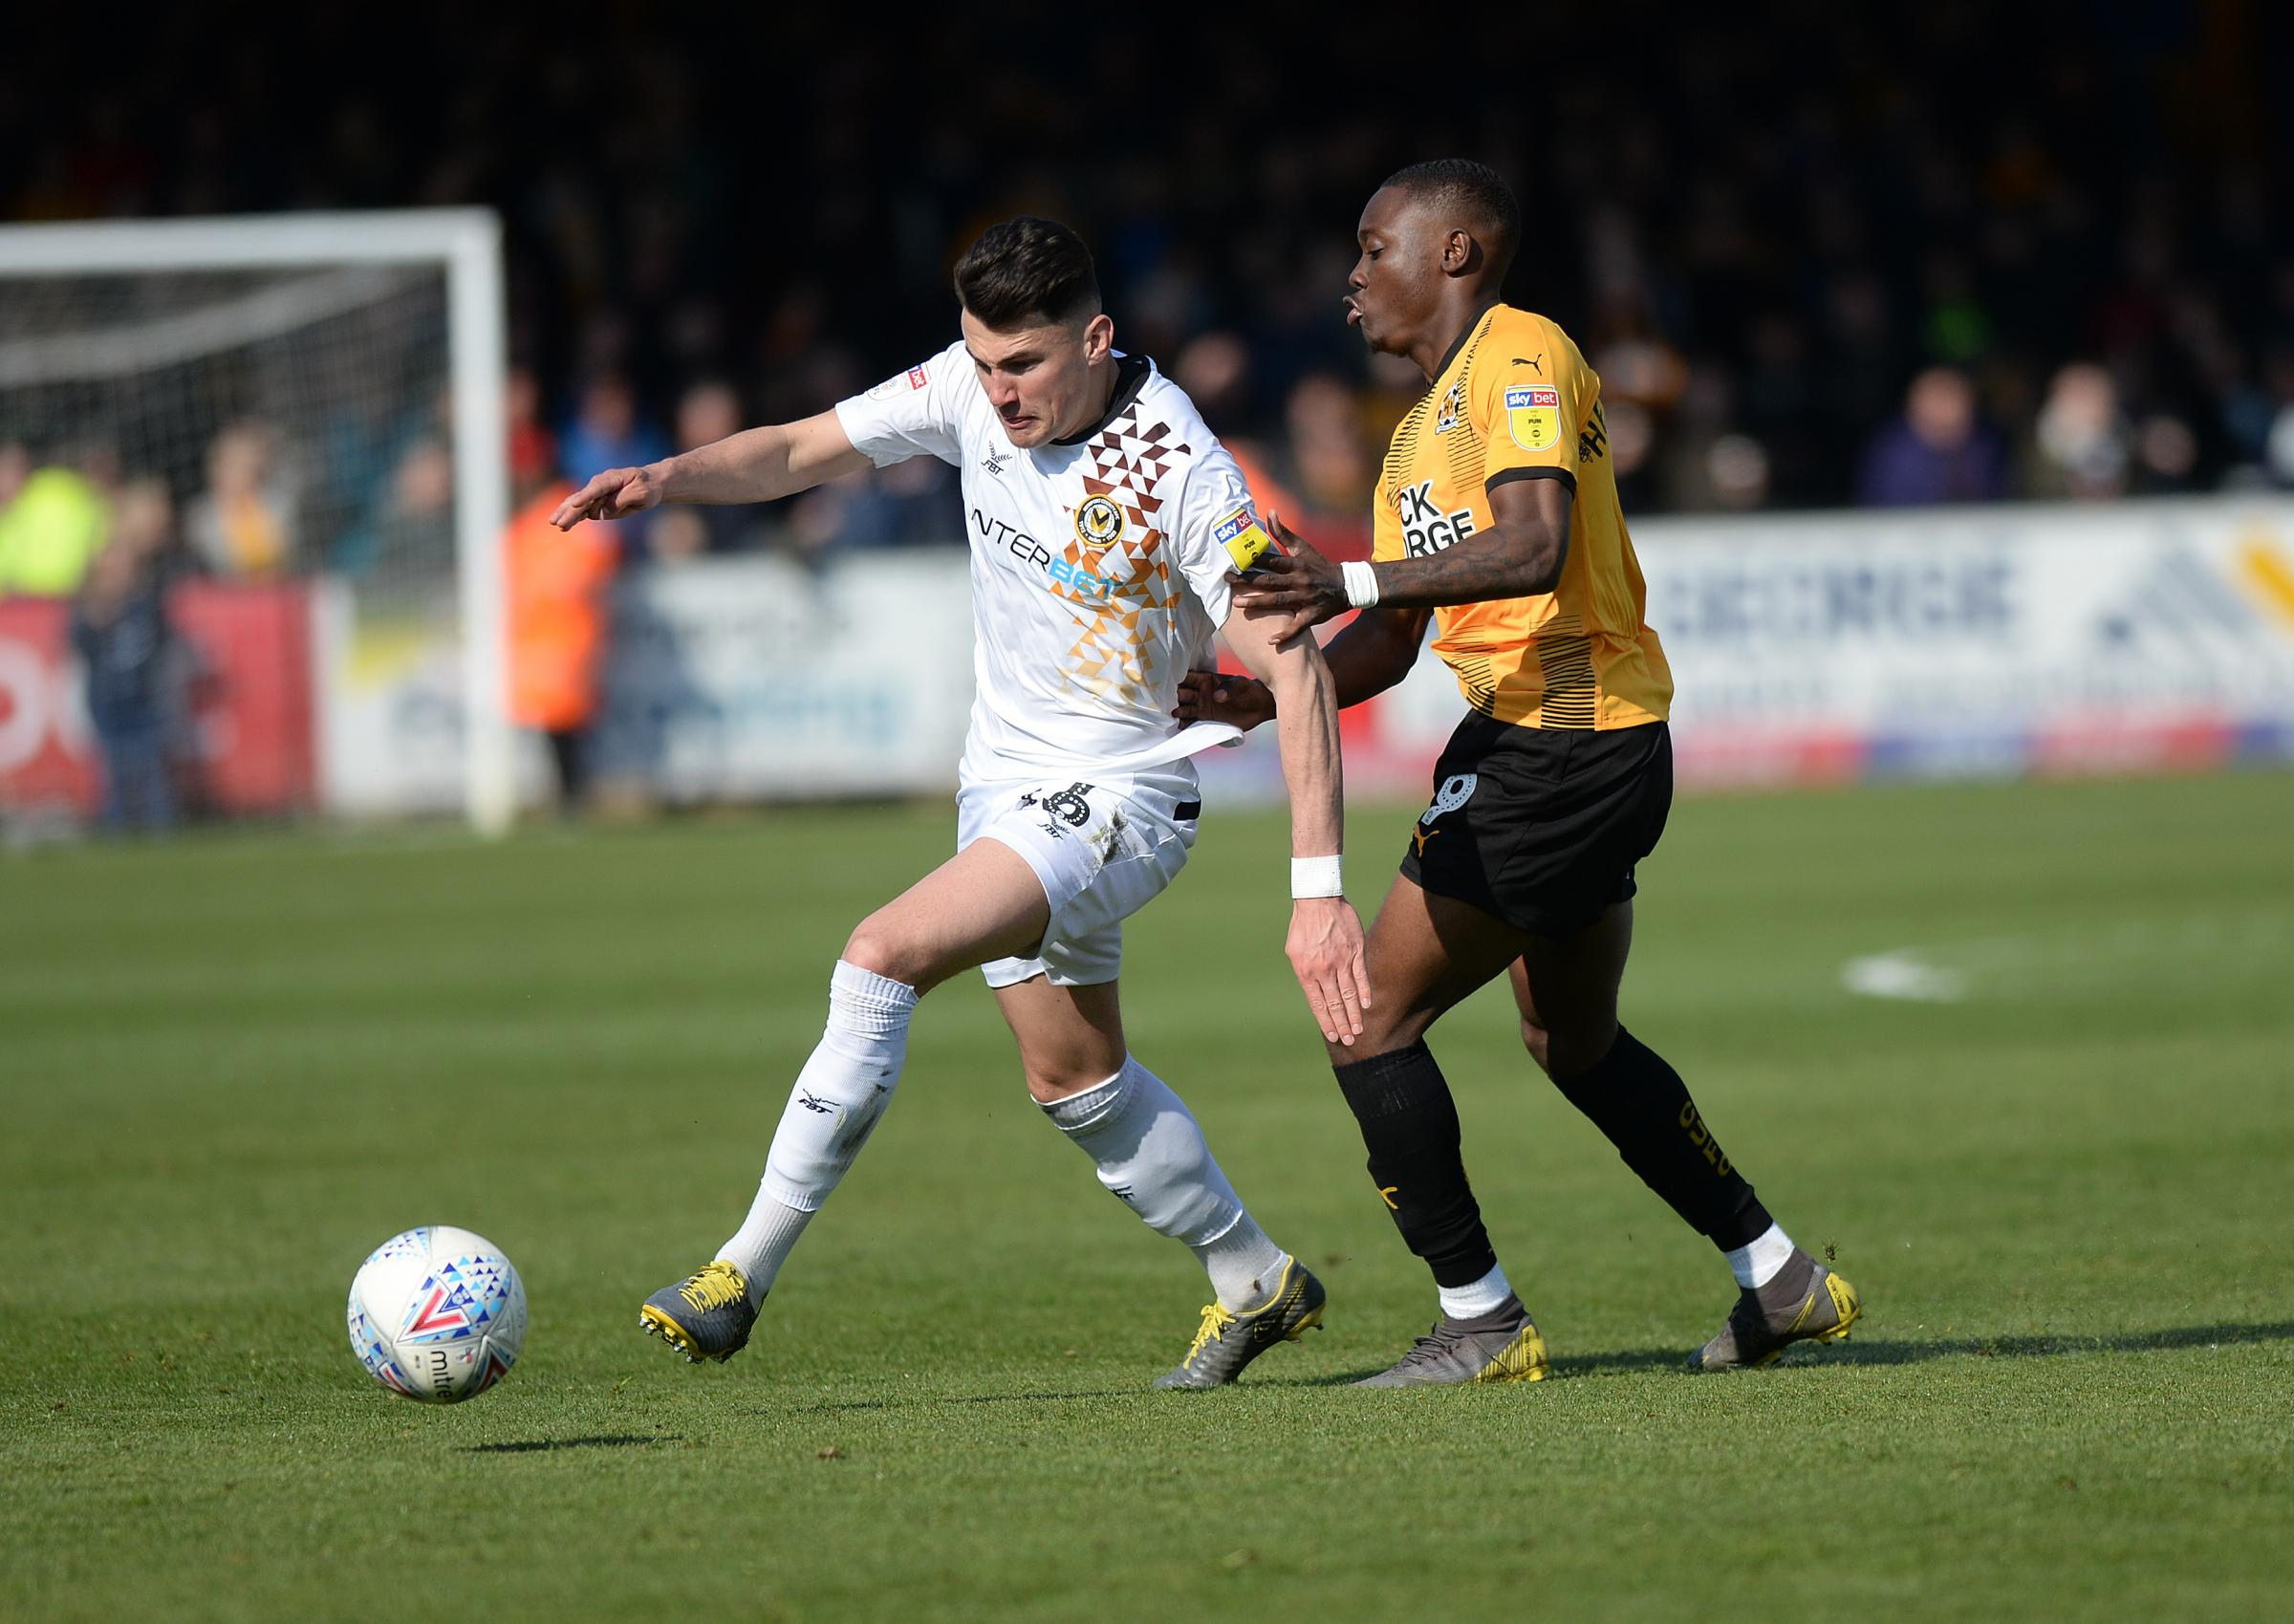 STAR: Regan Poole has made a big difference for Newport County since returning on loan from Manchester United